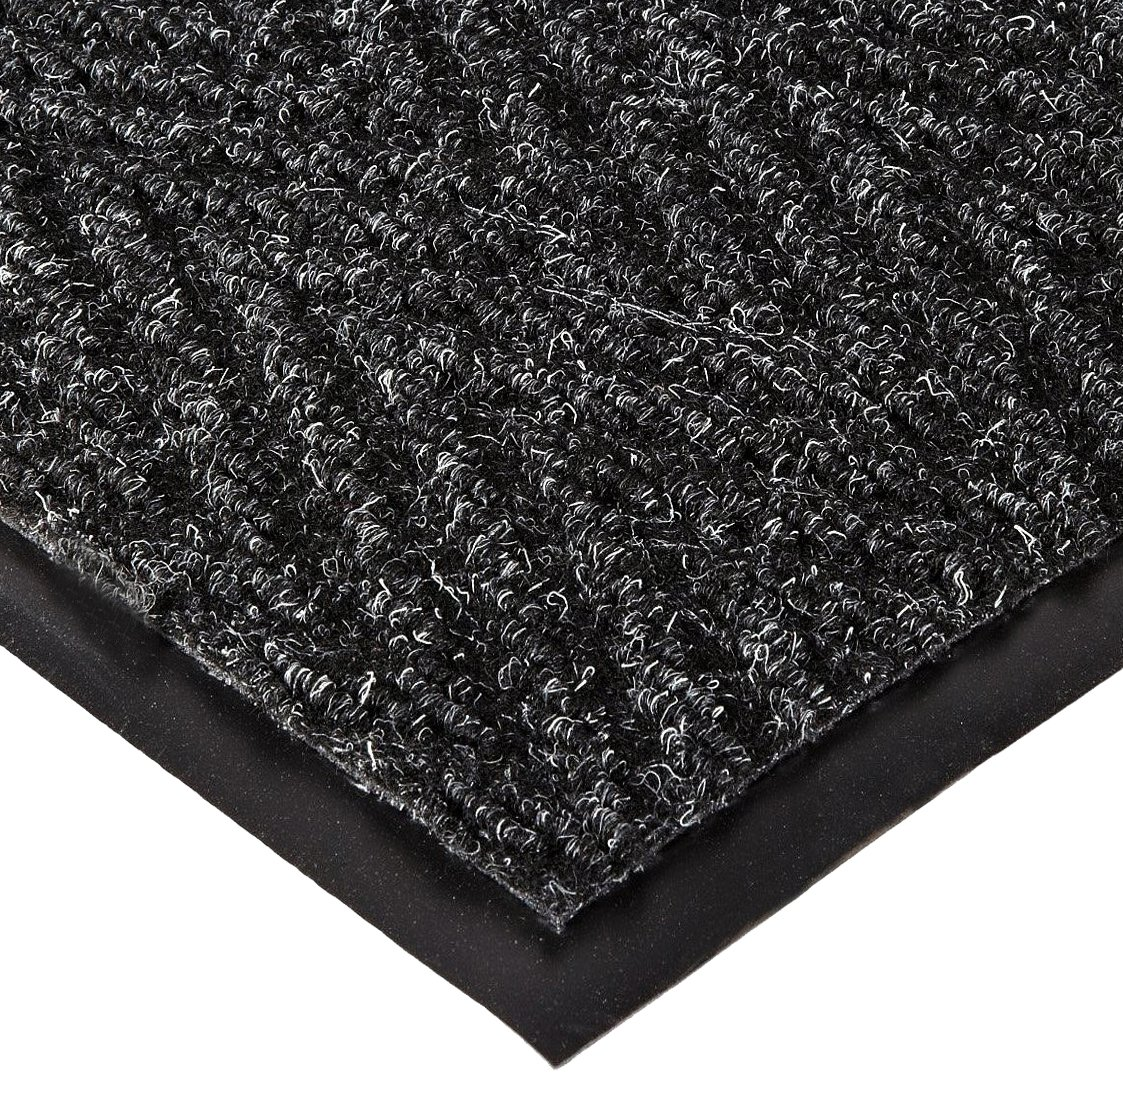 NoTrax 105 Chevron Entrance Mat, for Lobbies and Indoor Entranceways, 4' Width x 6' Length x 5/16'' Thickness, Charcoal by NoTrax